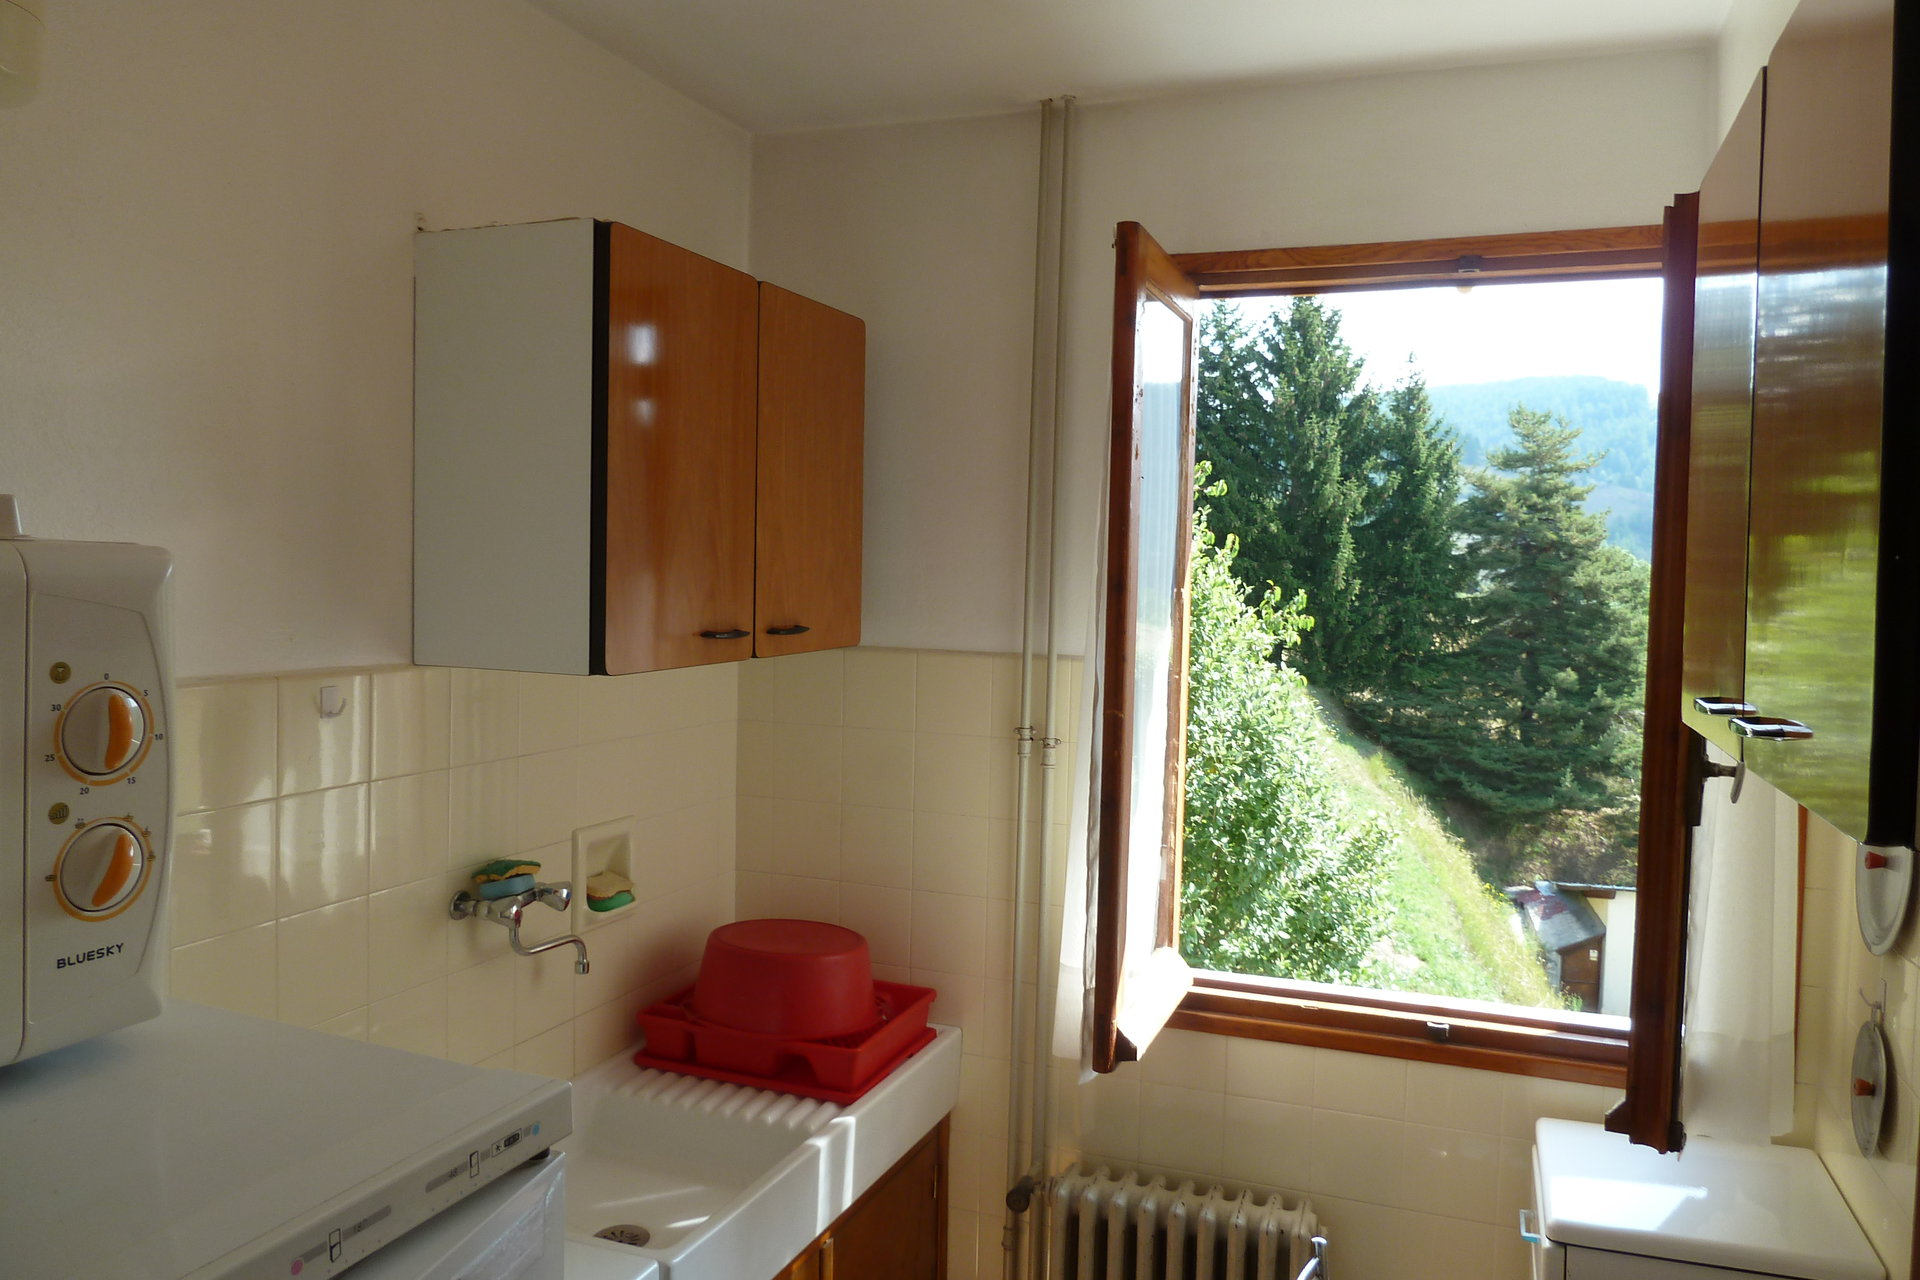 BEUIL 06 - CHALET GITE - 6 APPARTEMENTS